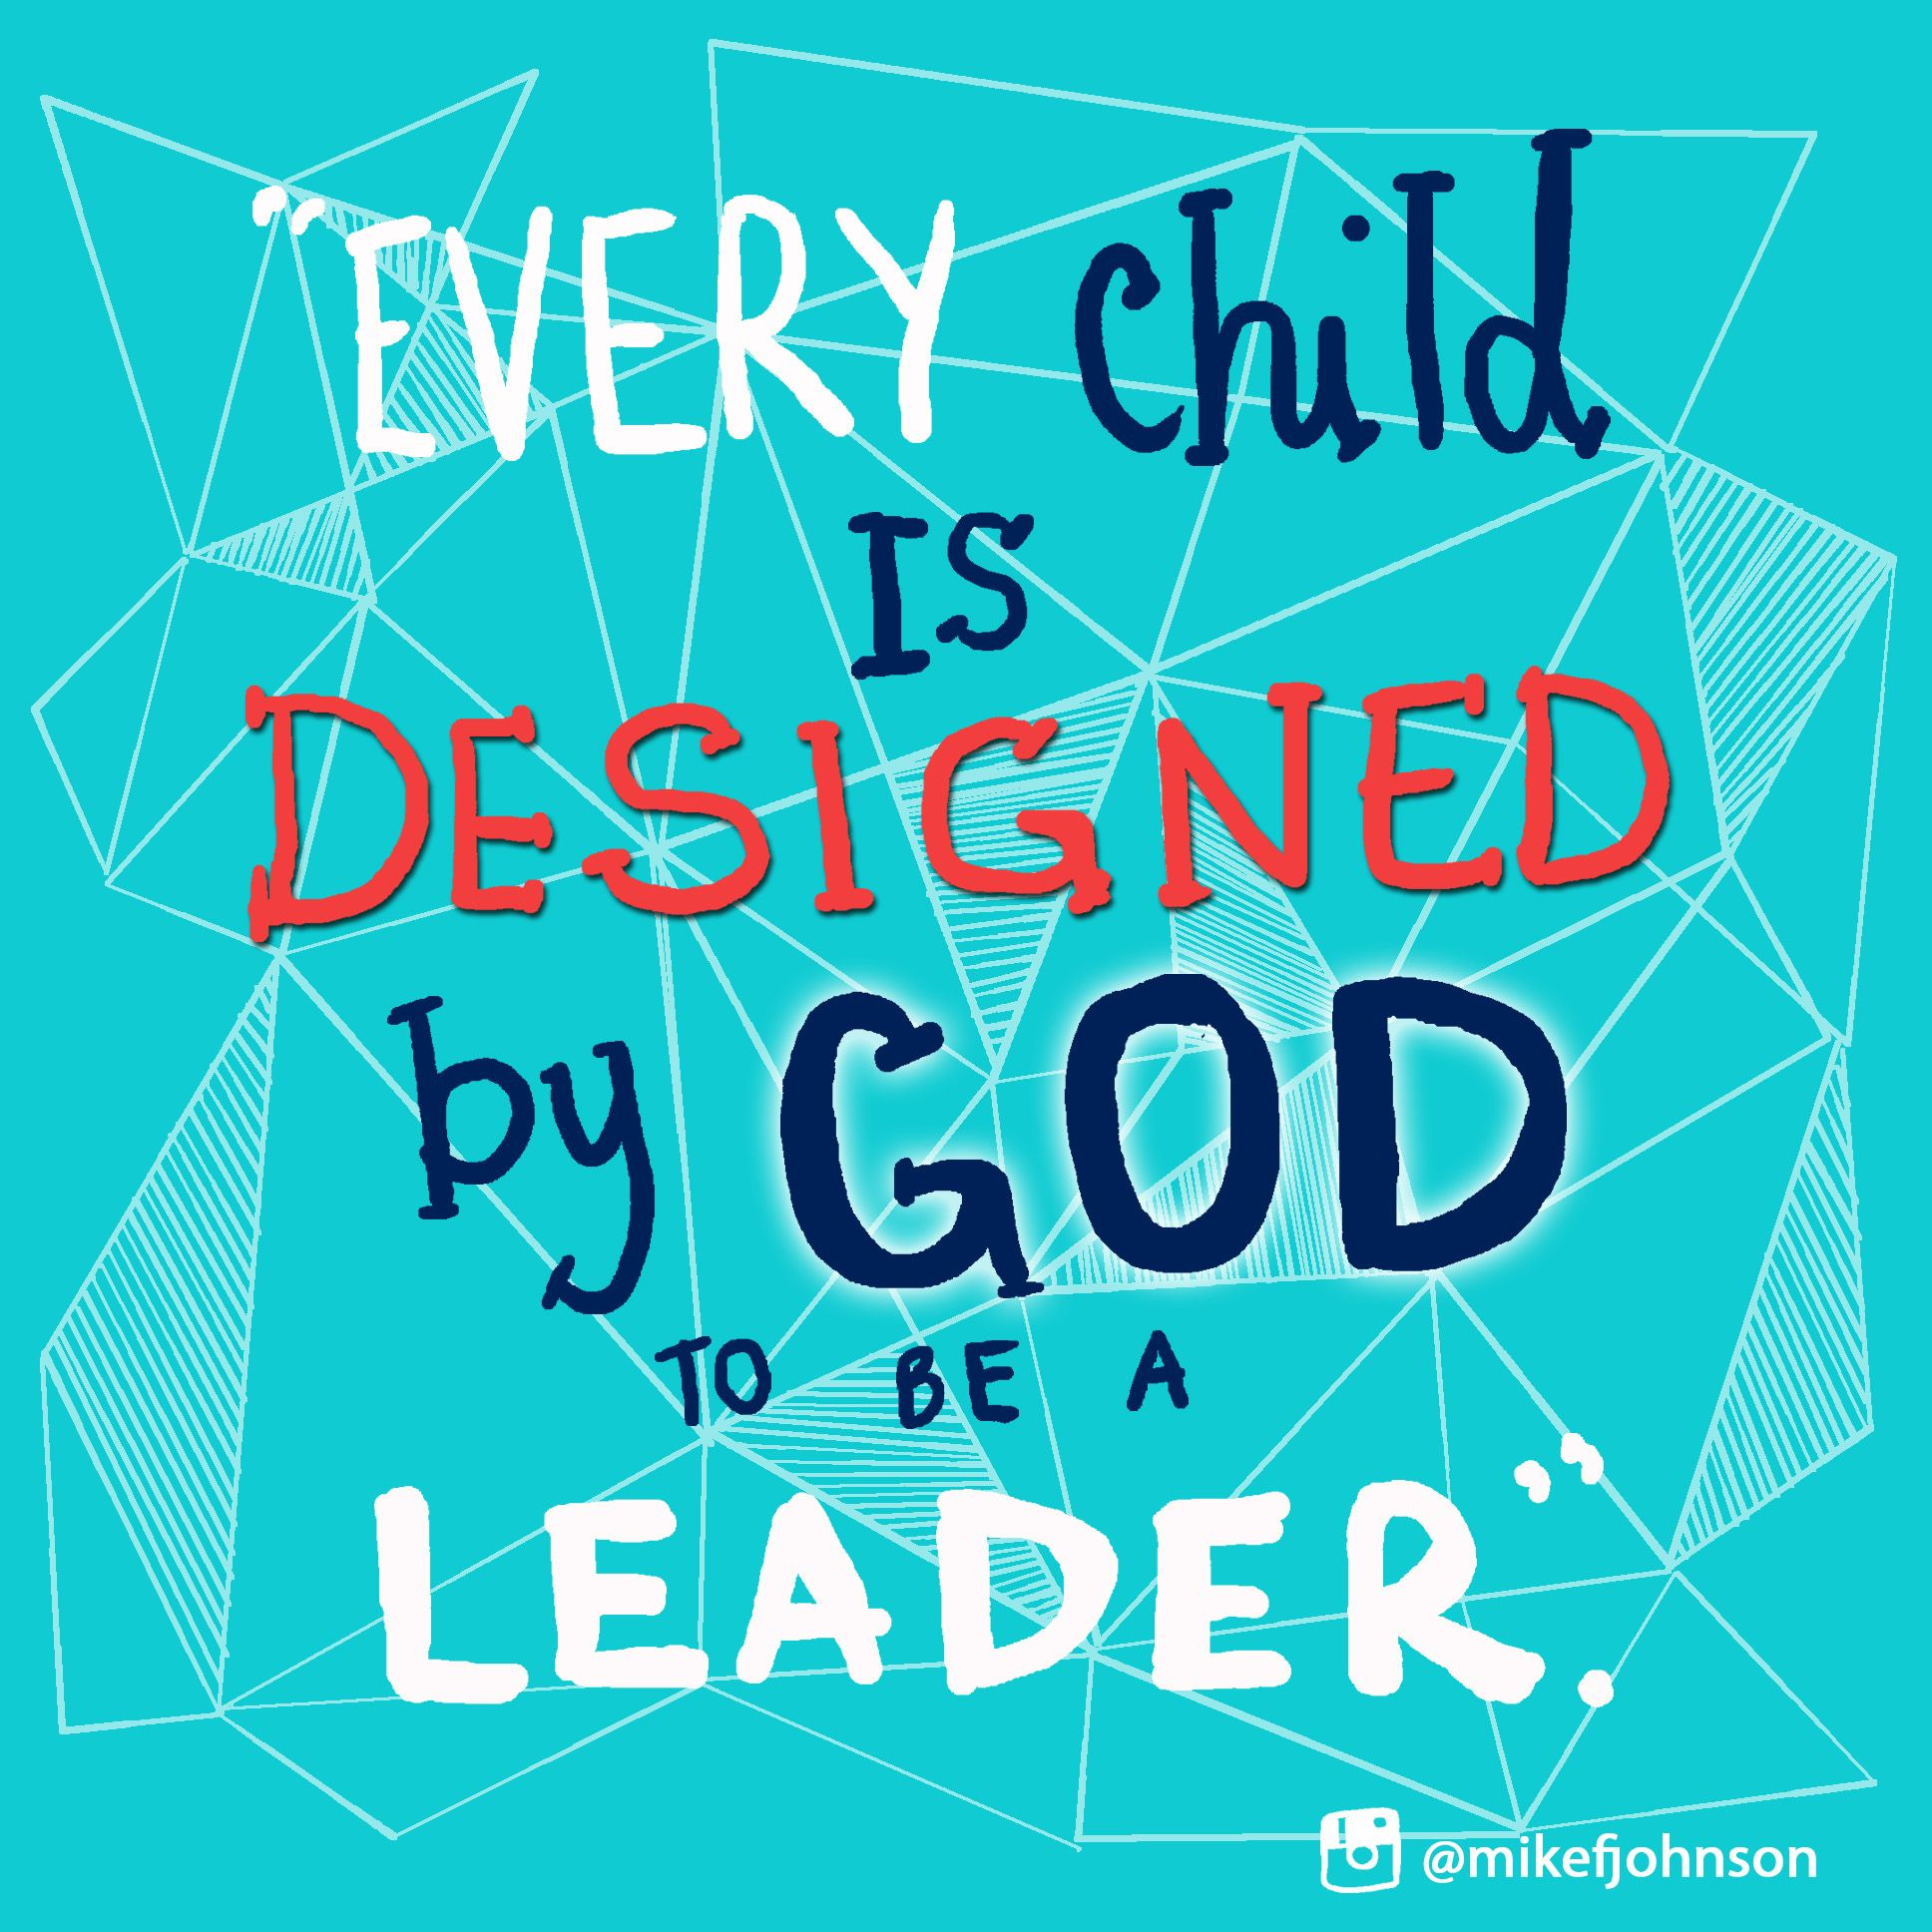 Every child is designed by God to be a leader! | Quotes | Pinterest ...